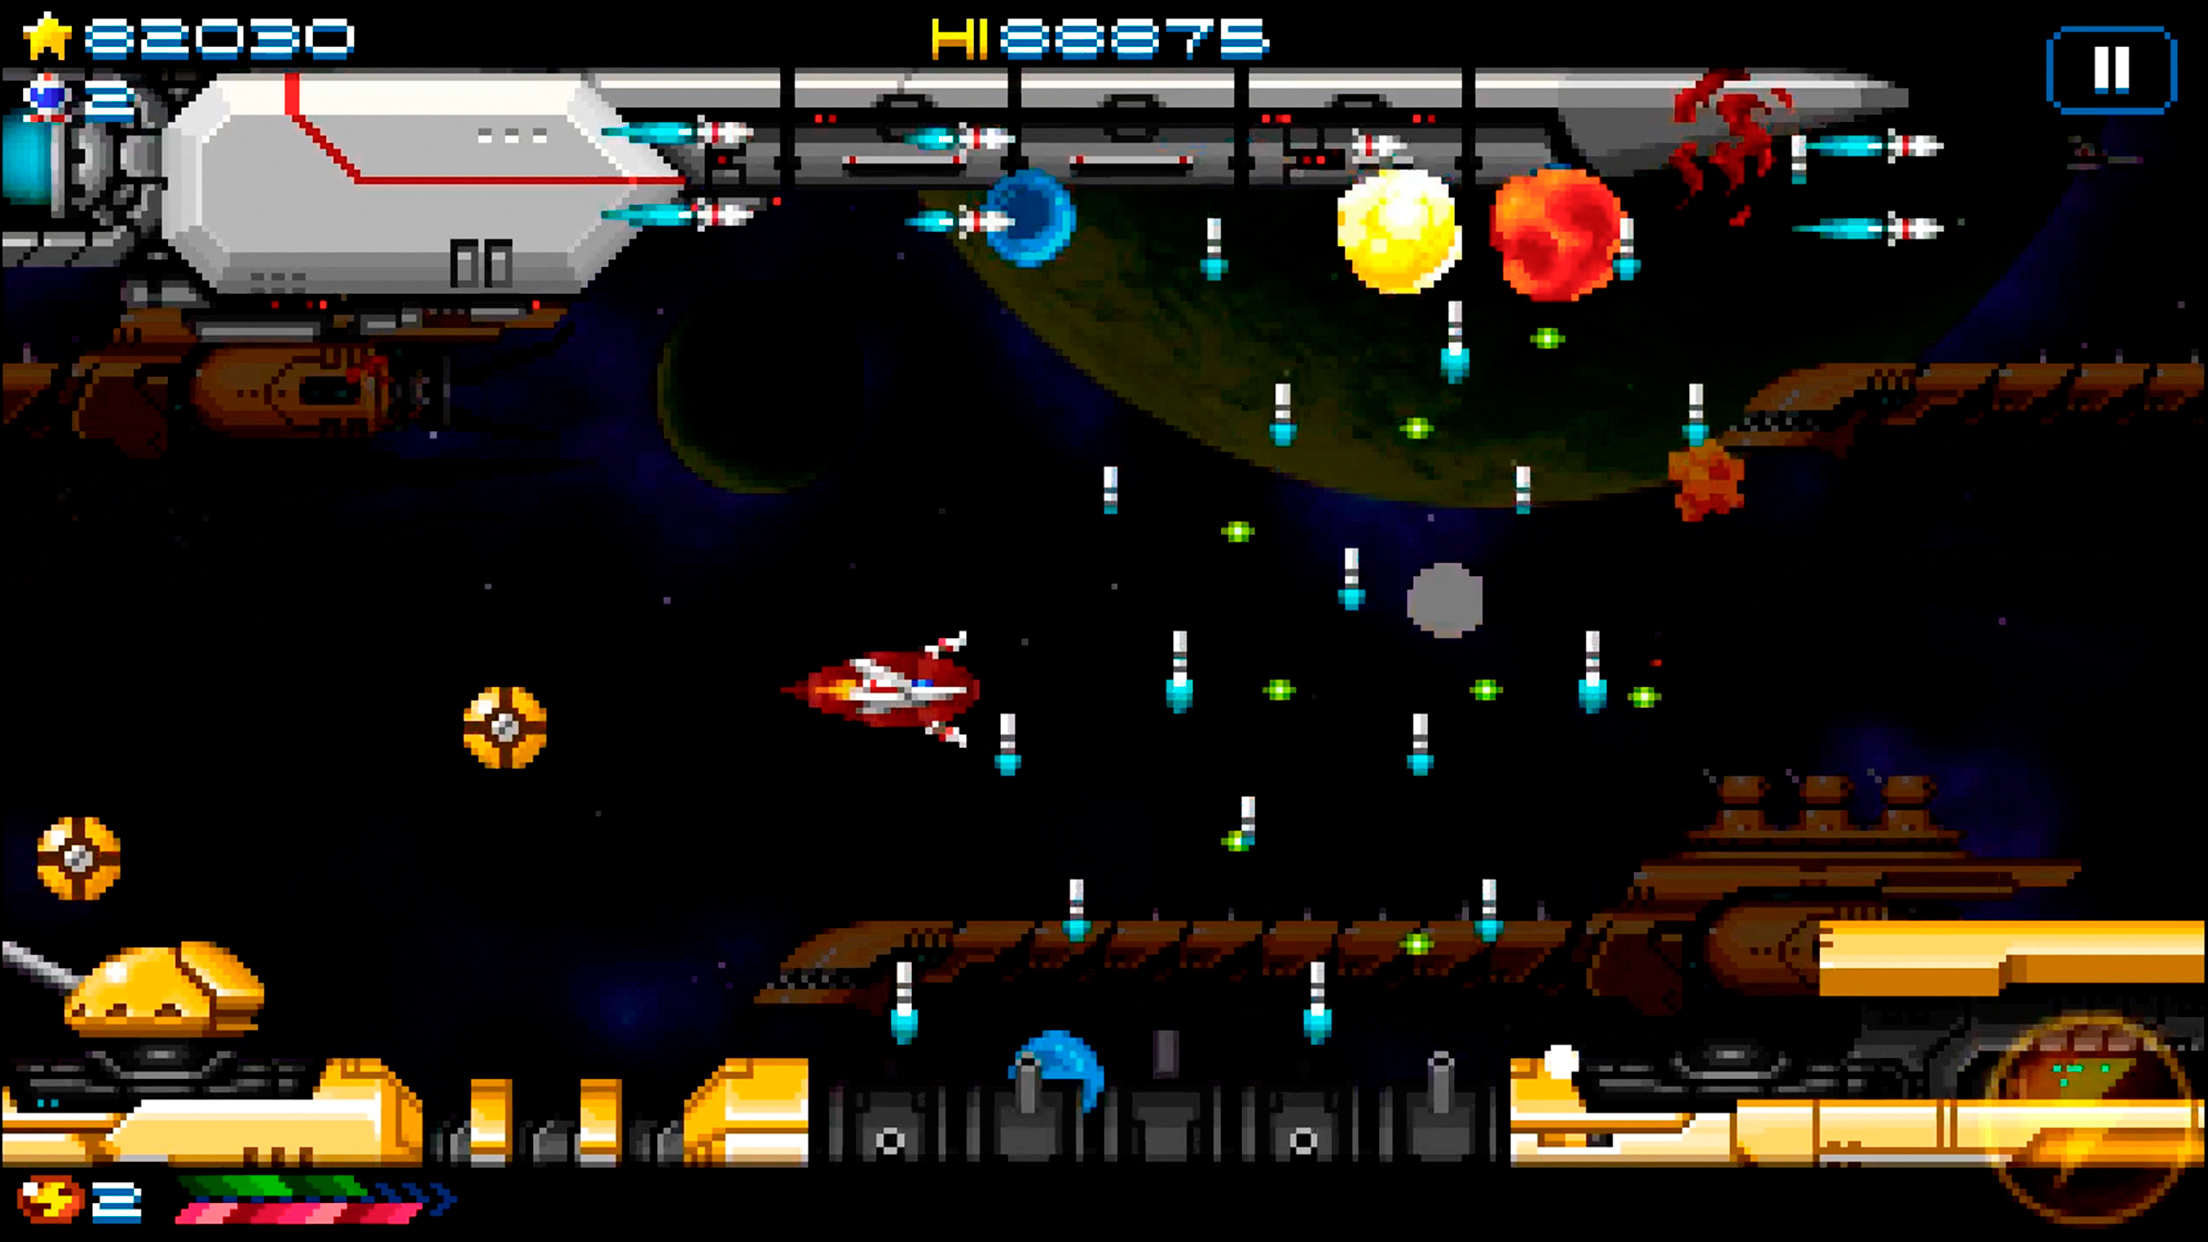 The popular space shmup Super Hydorah heads to iOS next month, but you can pre-order it right now